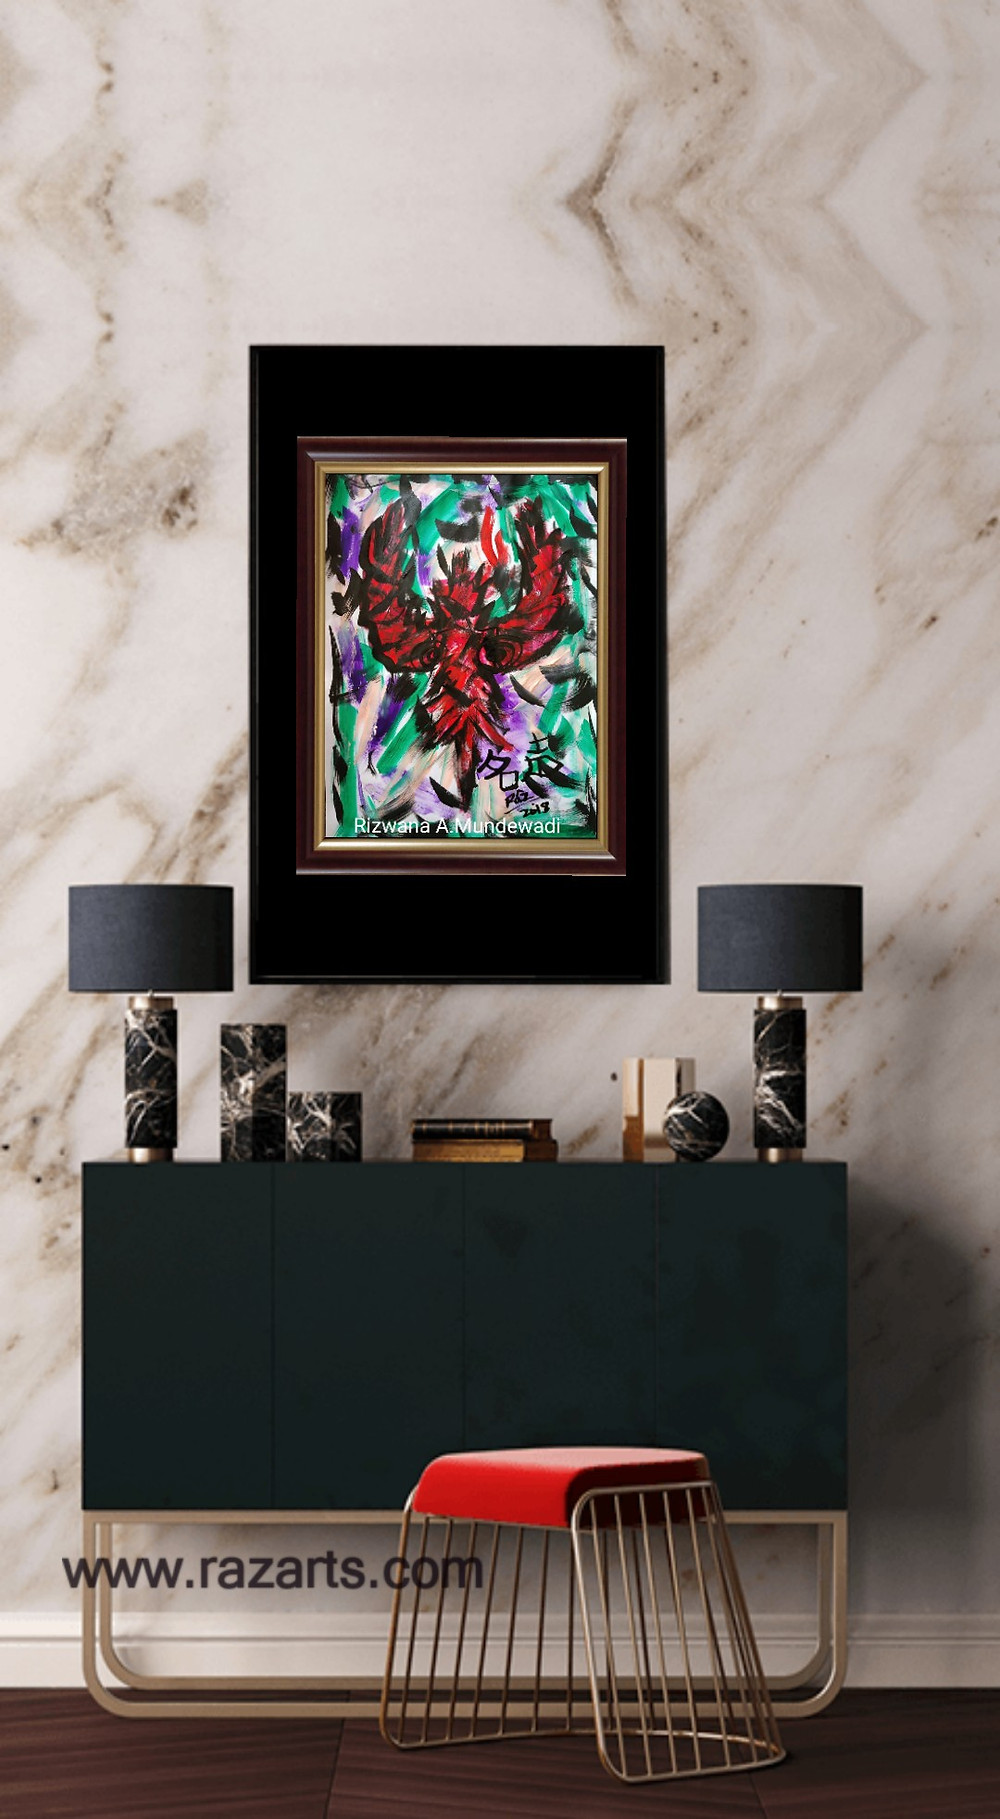 Phoenix rising feng shui painting for sale